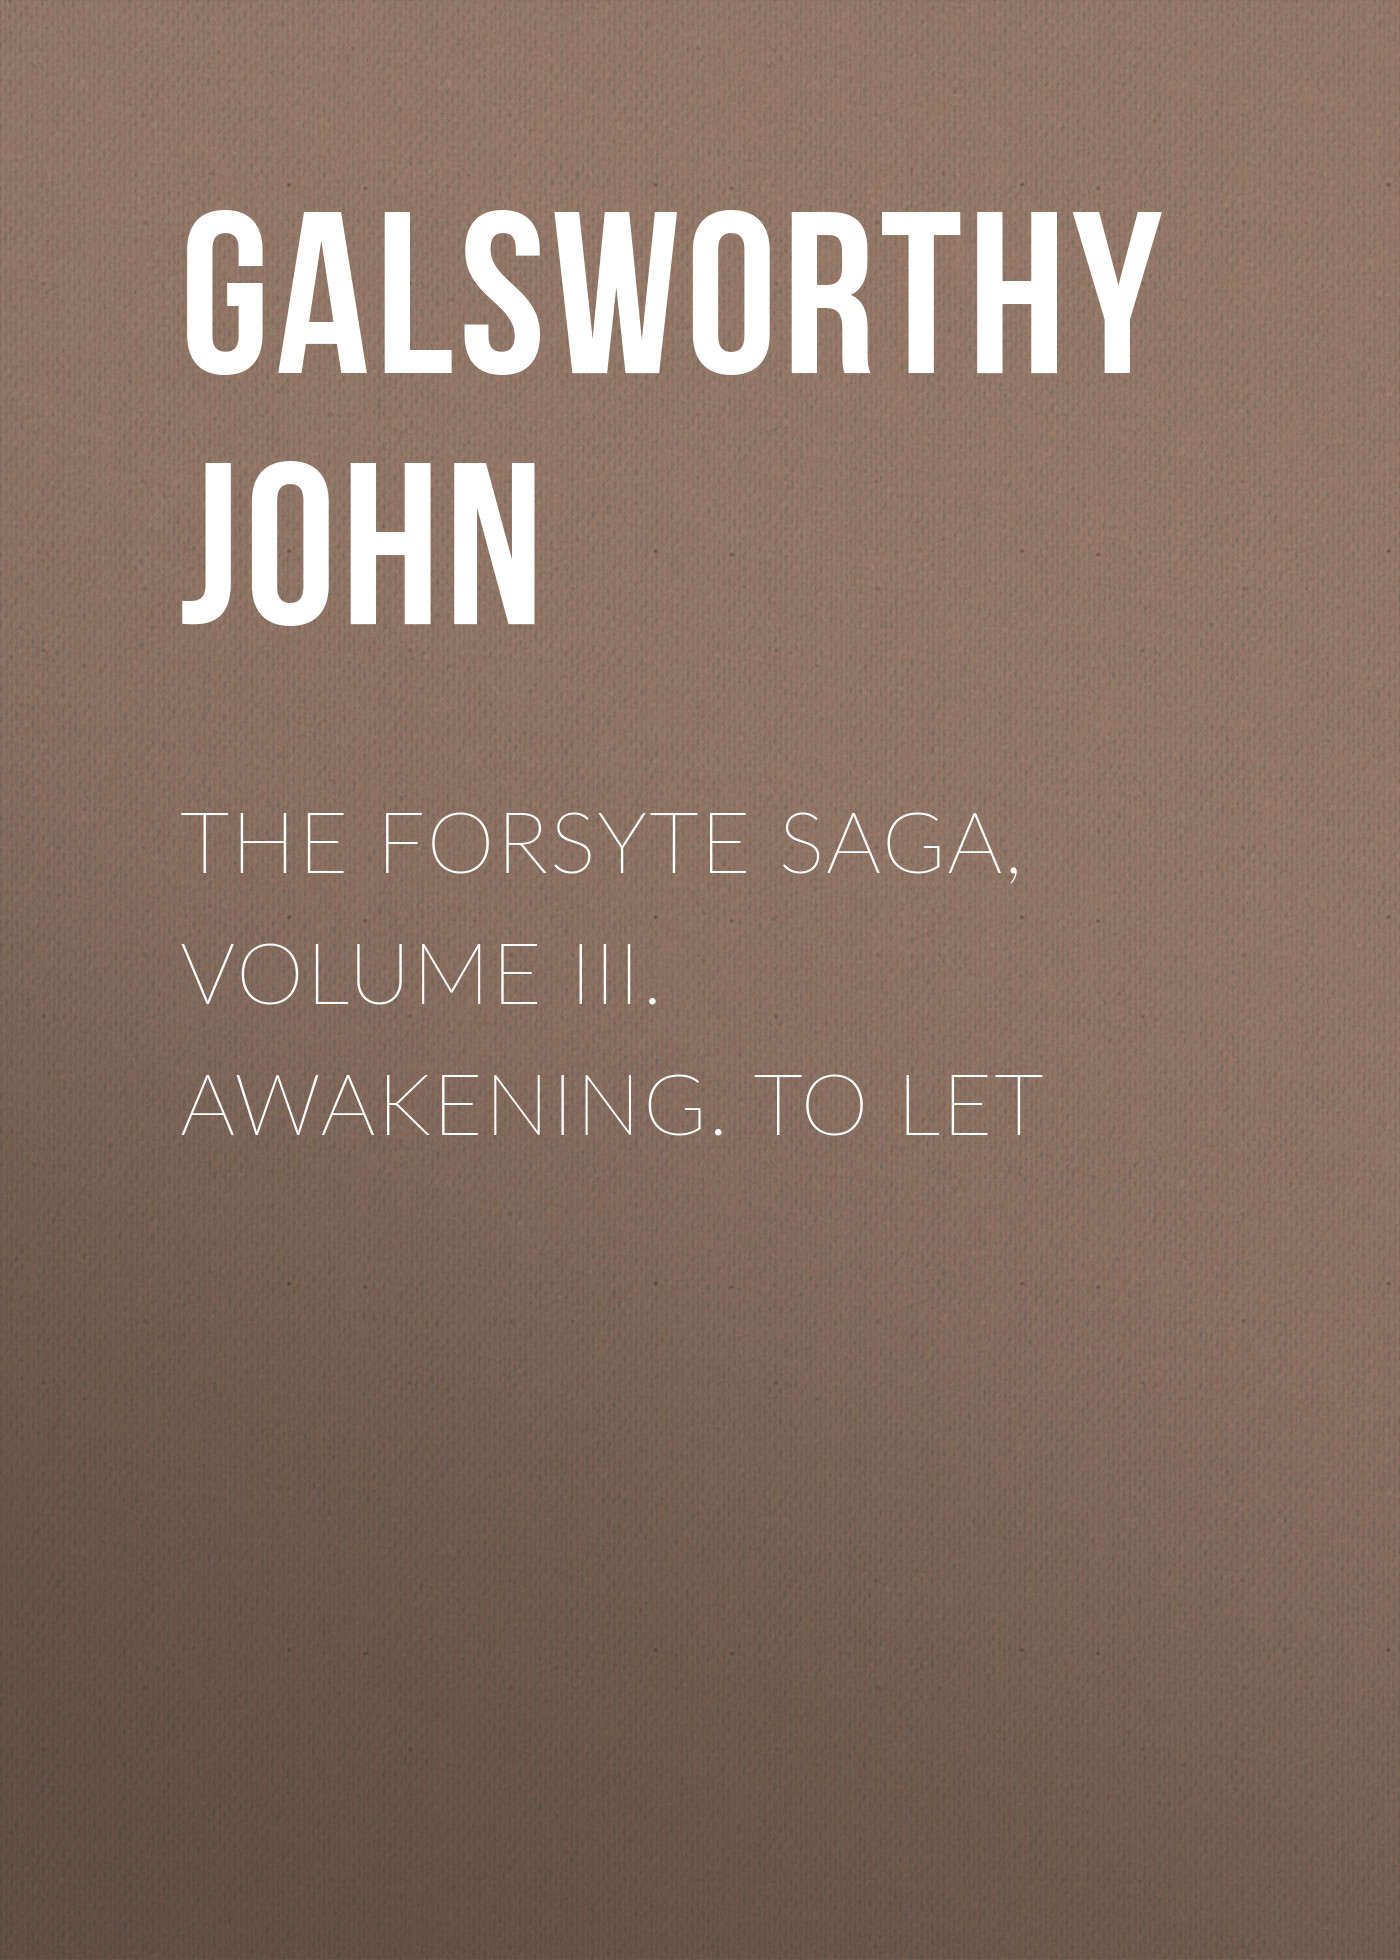 Galsworthy John The Forsyte Saga, Volume III. Awakening. To Let